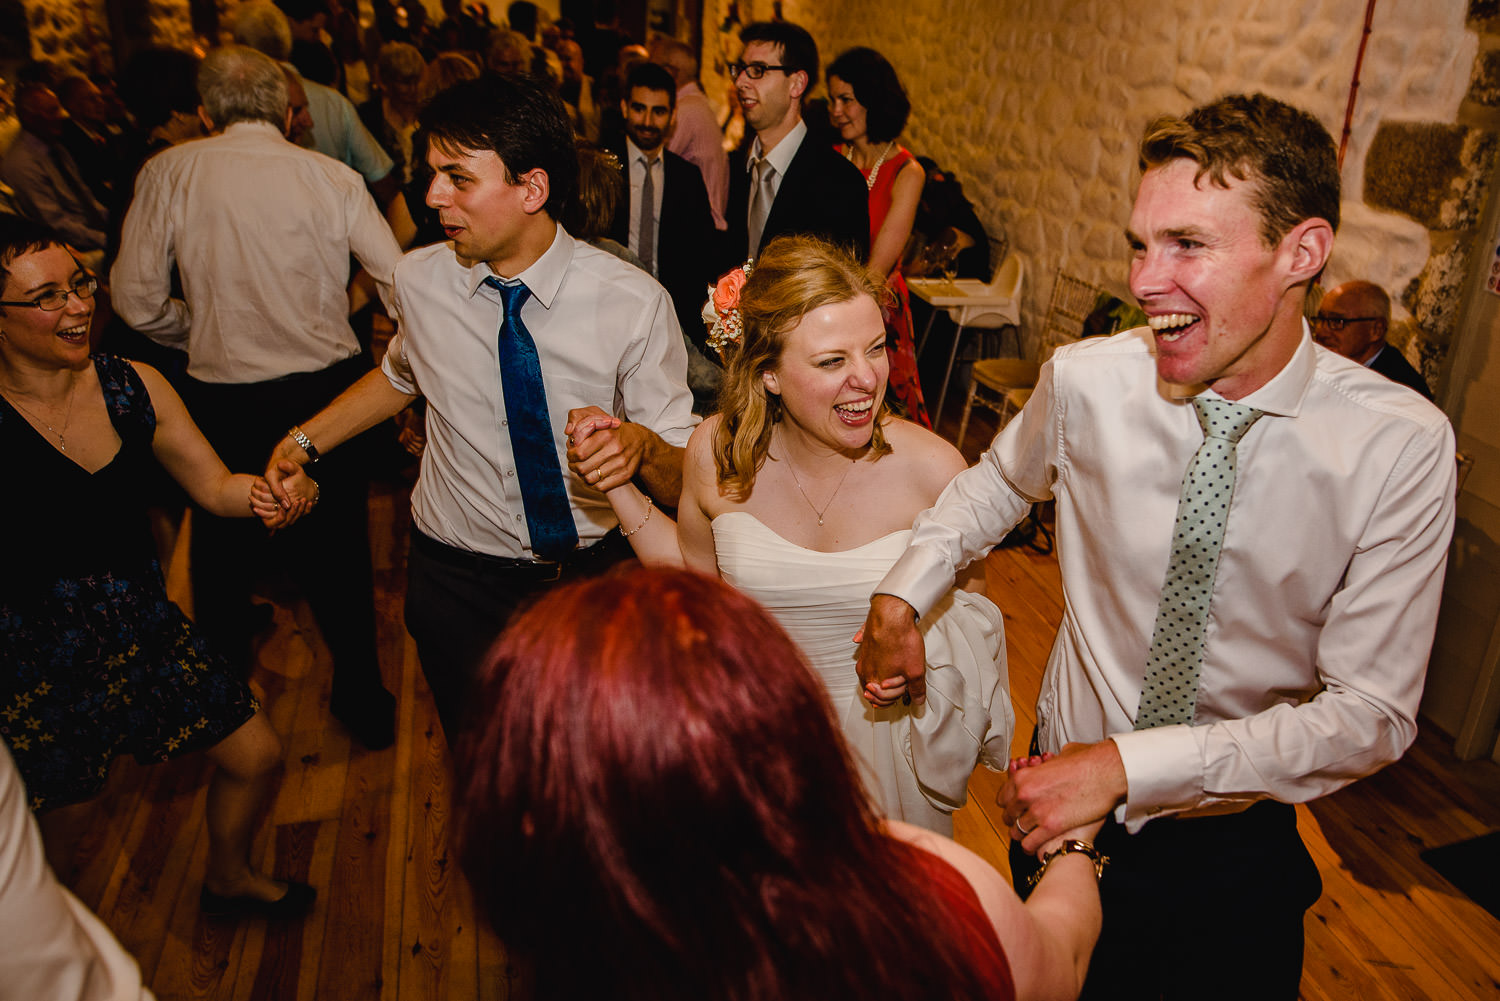 Ceilidh dance at Chypraze wedding